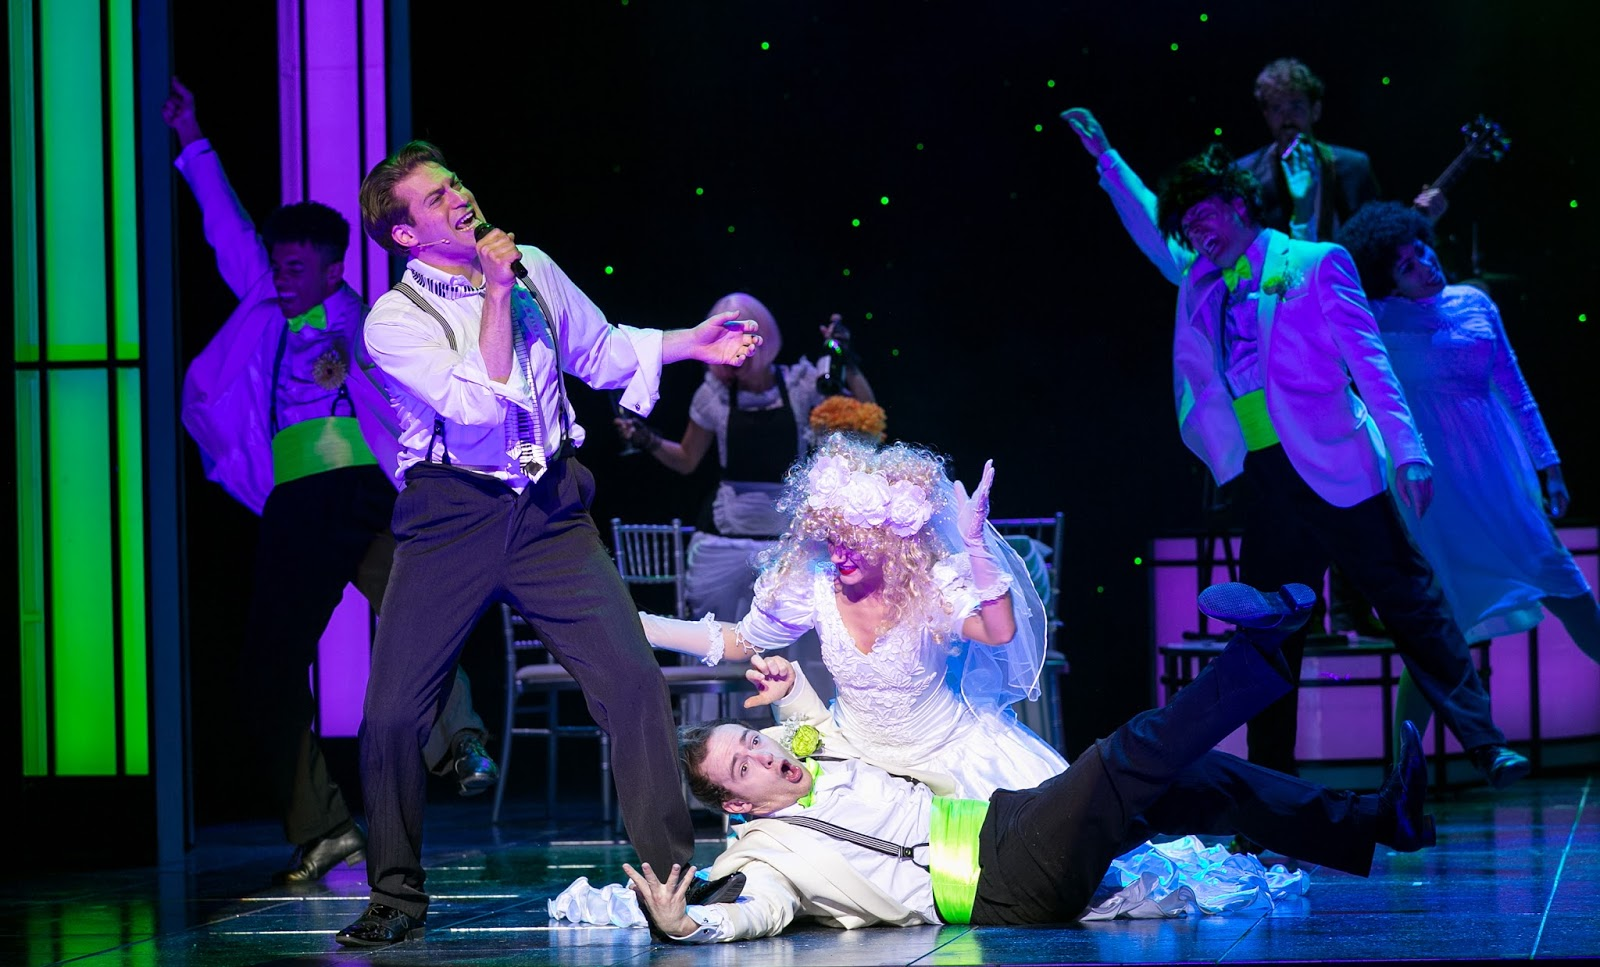 THE WEDDING SINGER - Theatre Review (UK Tour)